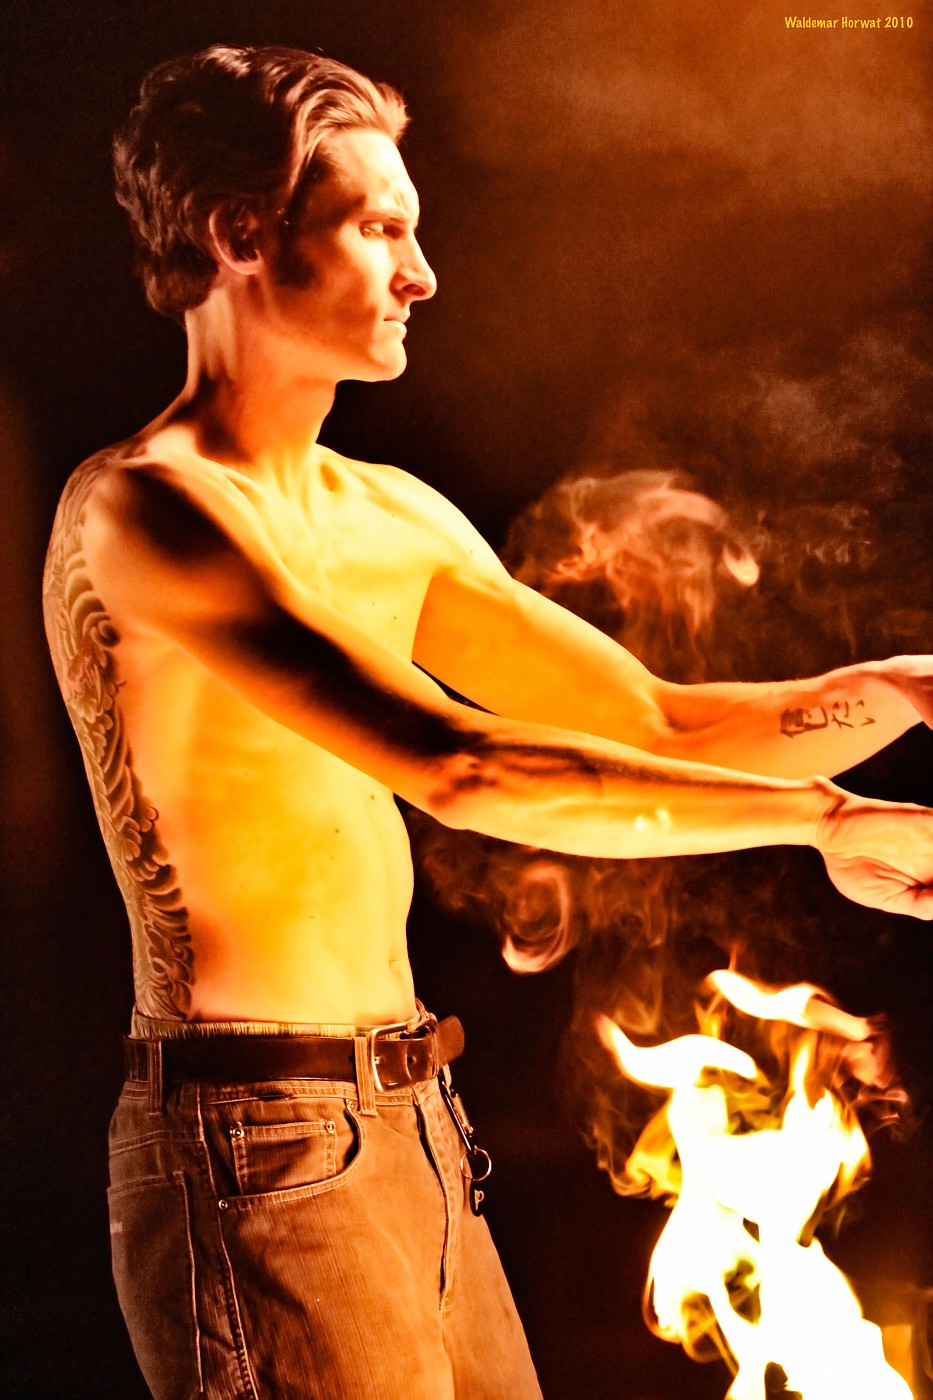 Fire and Tattoos